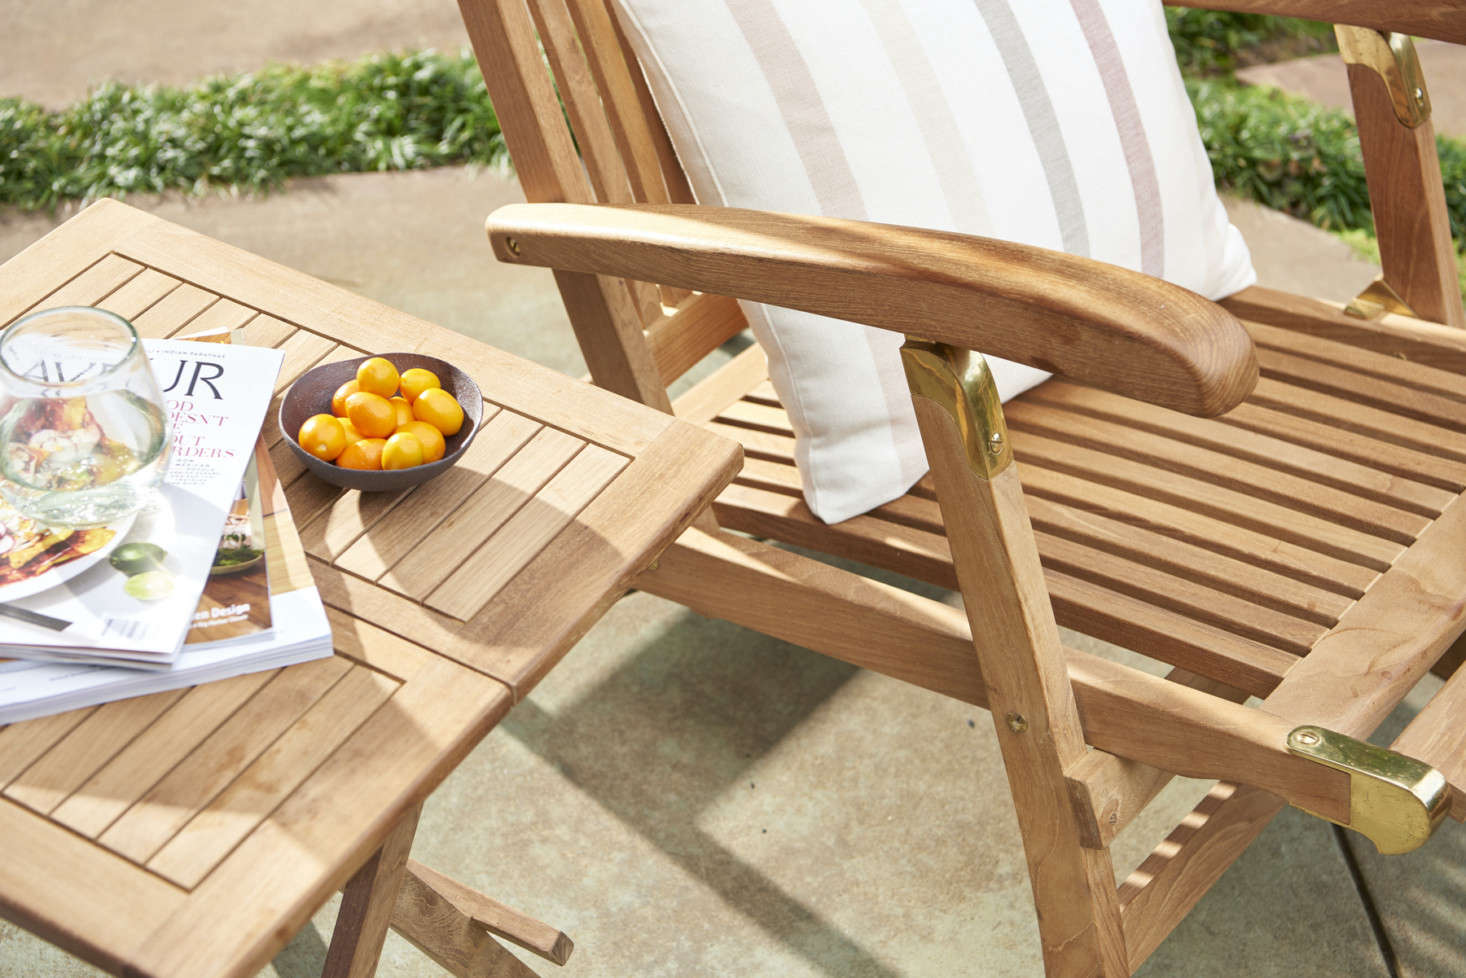 Make sure to add a Teak Folding Side Table ($9) alongside for keeping a glass of lemonade within easy reach.